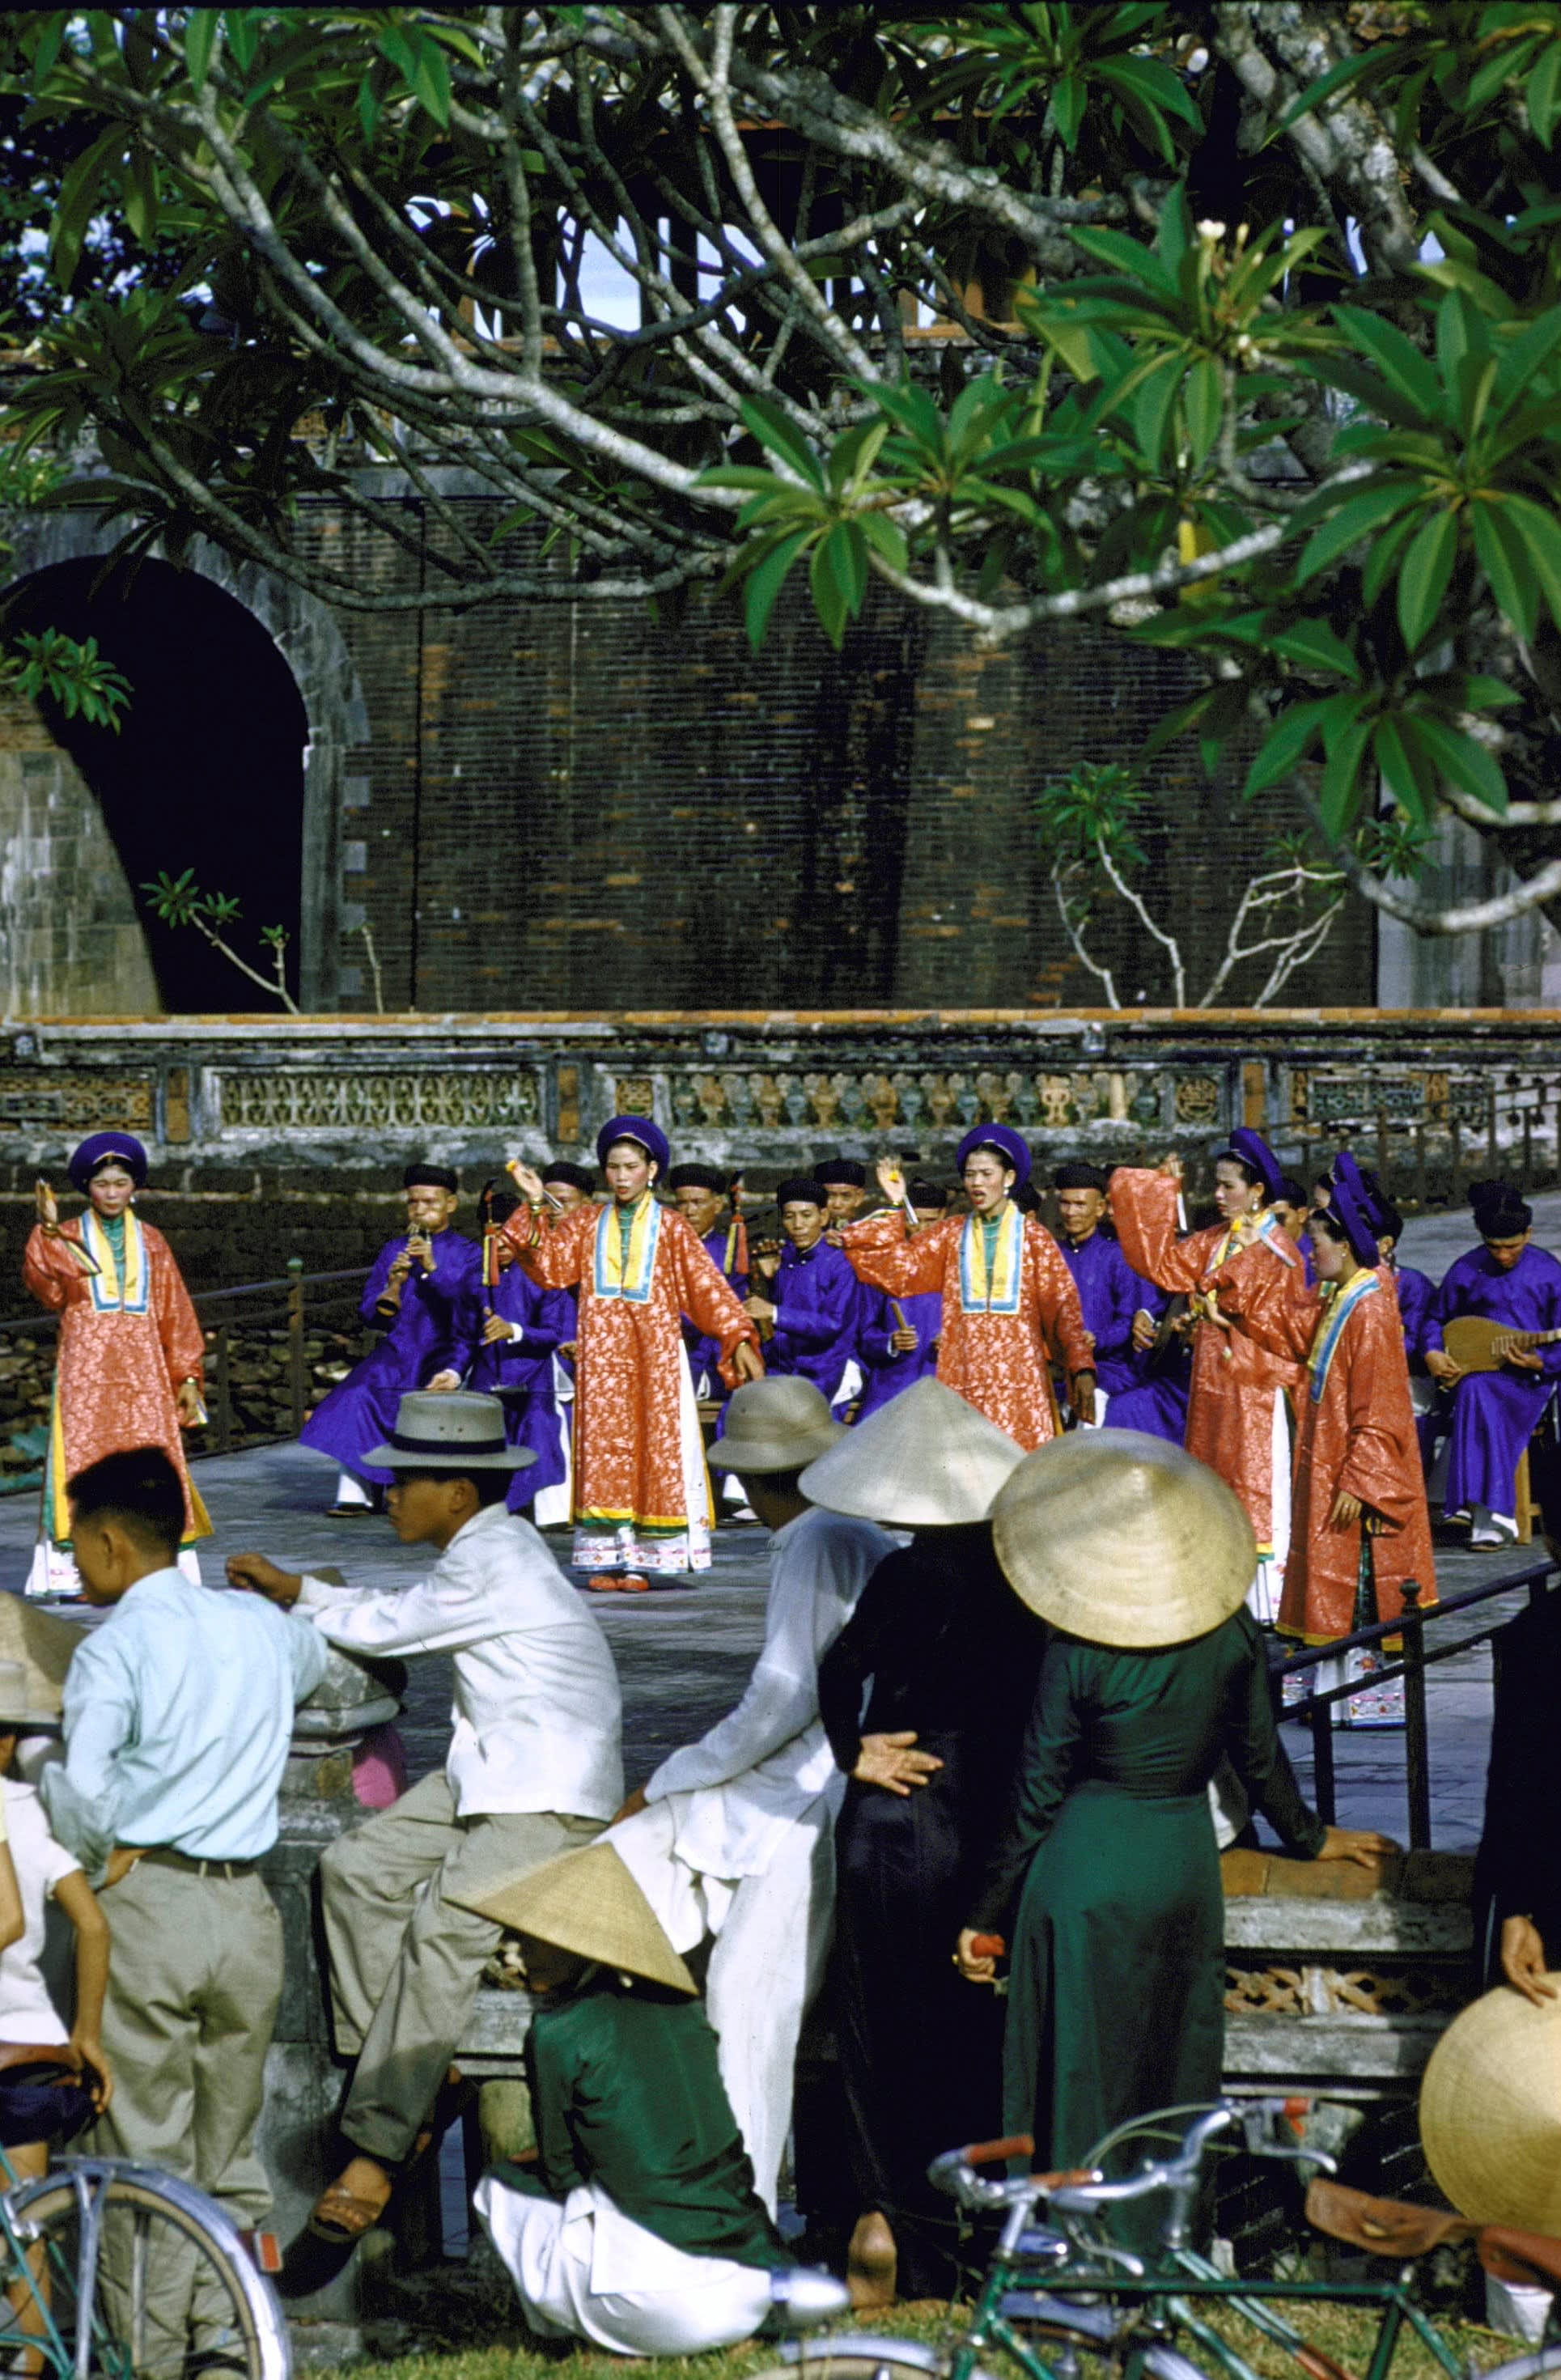 Outdoor performance by traditional musicians and dancers from the Imperial City, Vietnam (Getty Images)